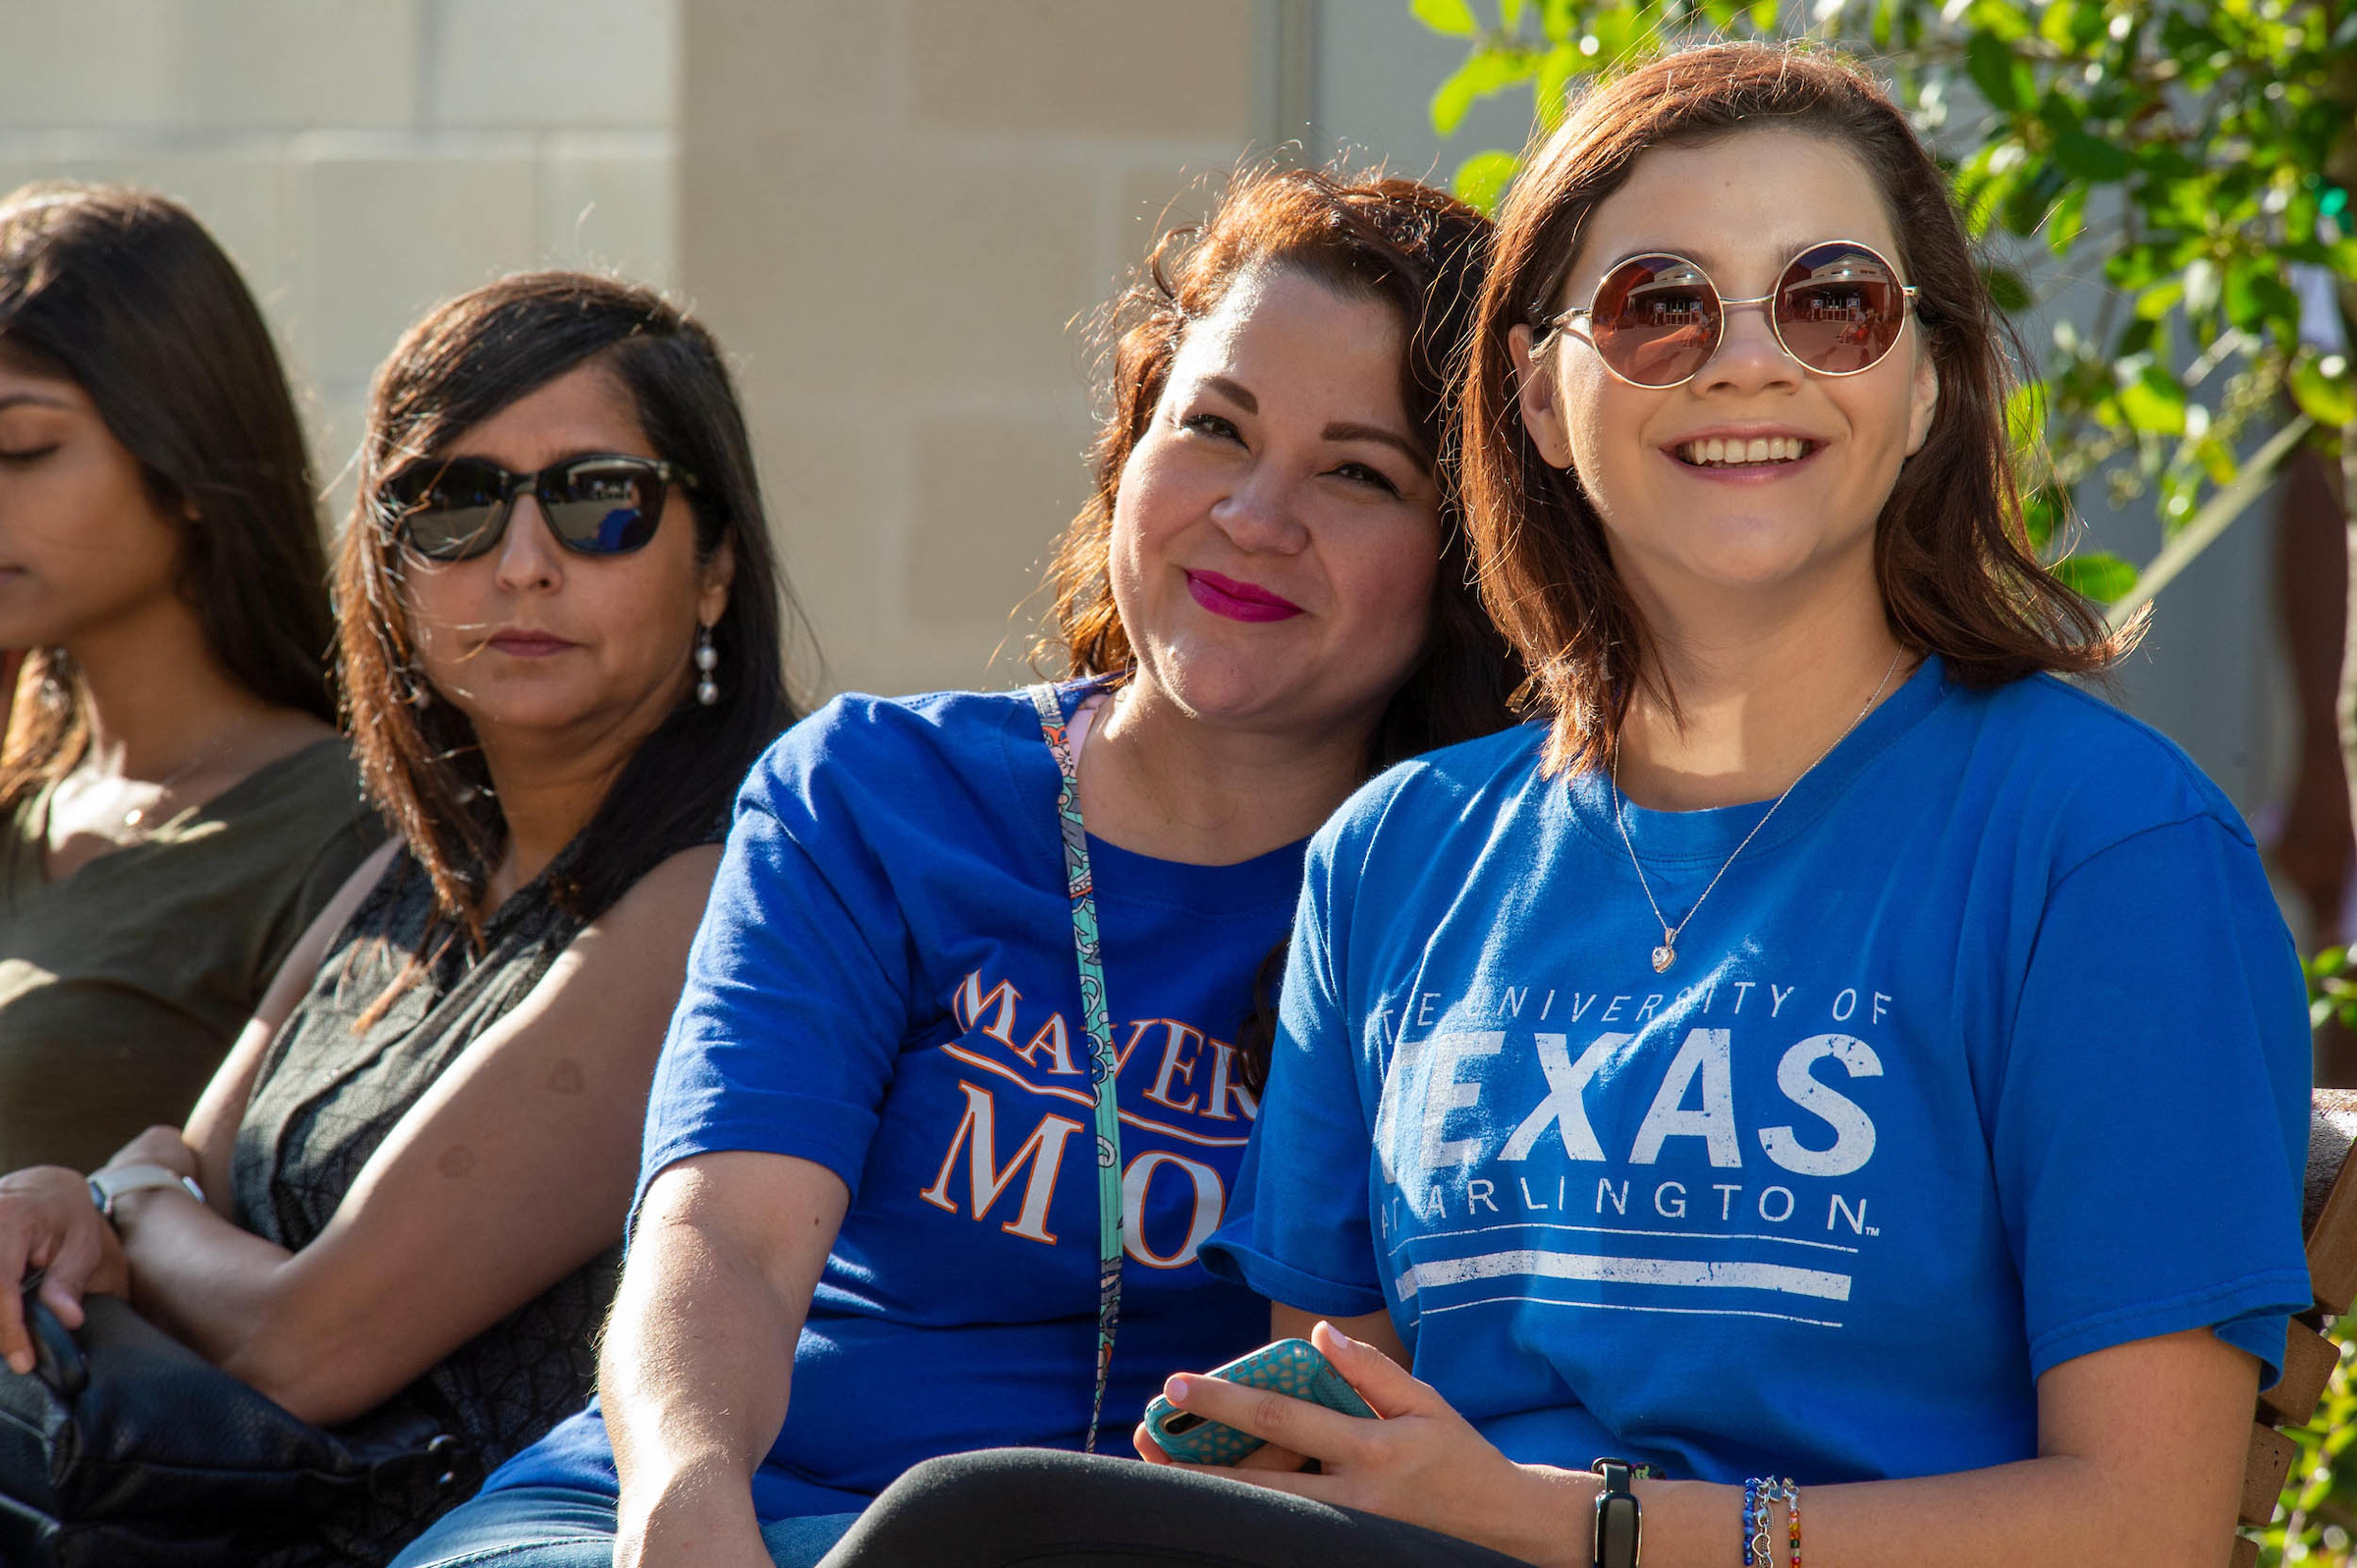 A UTA student pictured with her mom. Both are wearing UTA shirts.